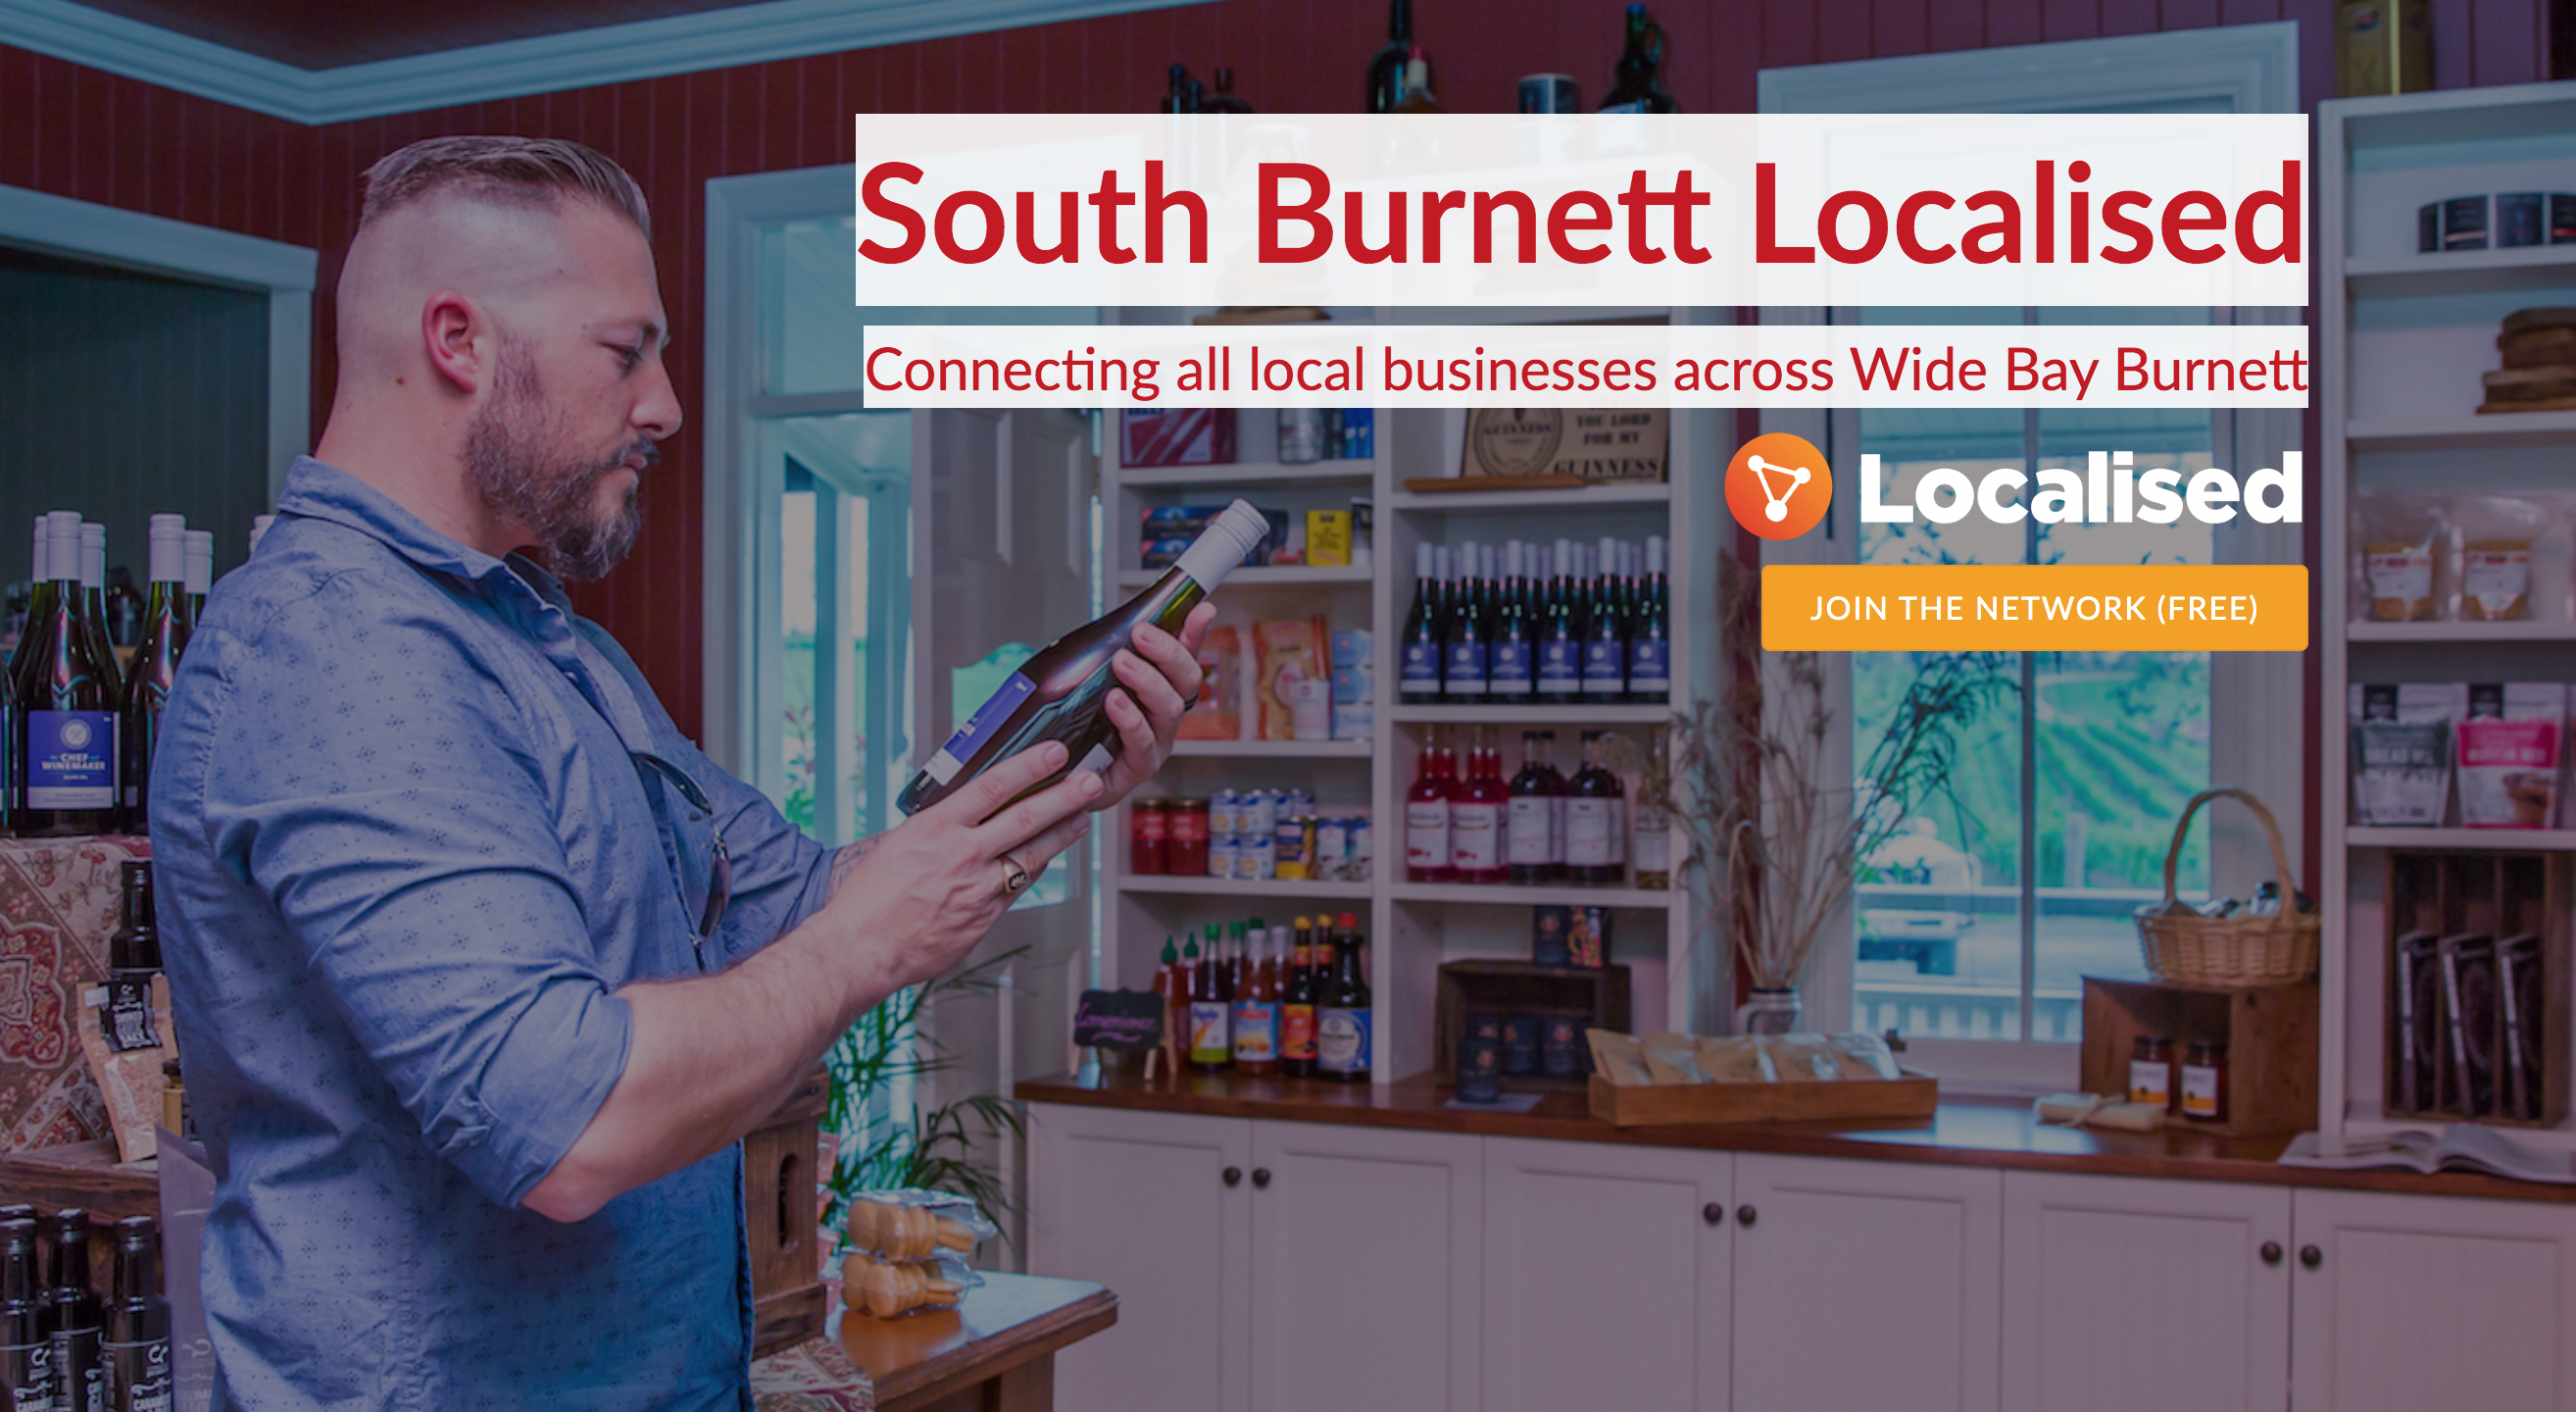 South Burnett Localised